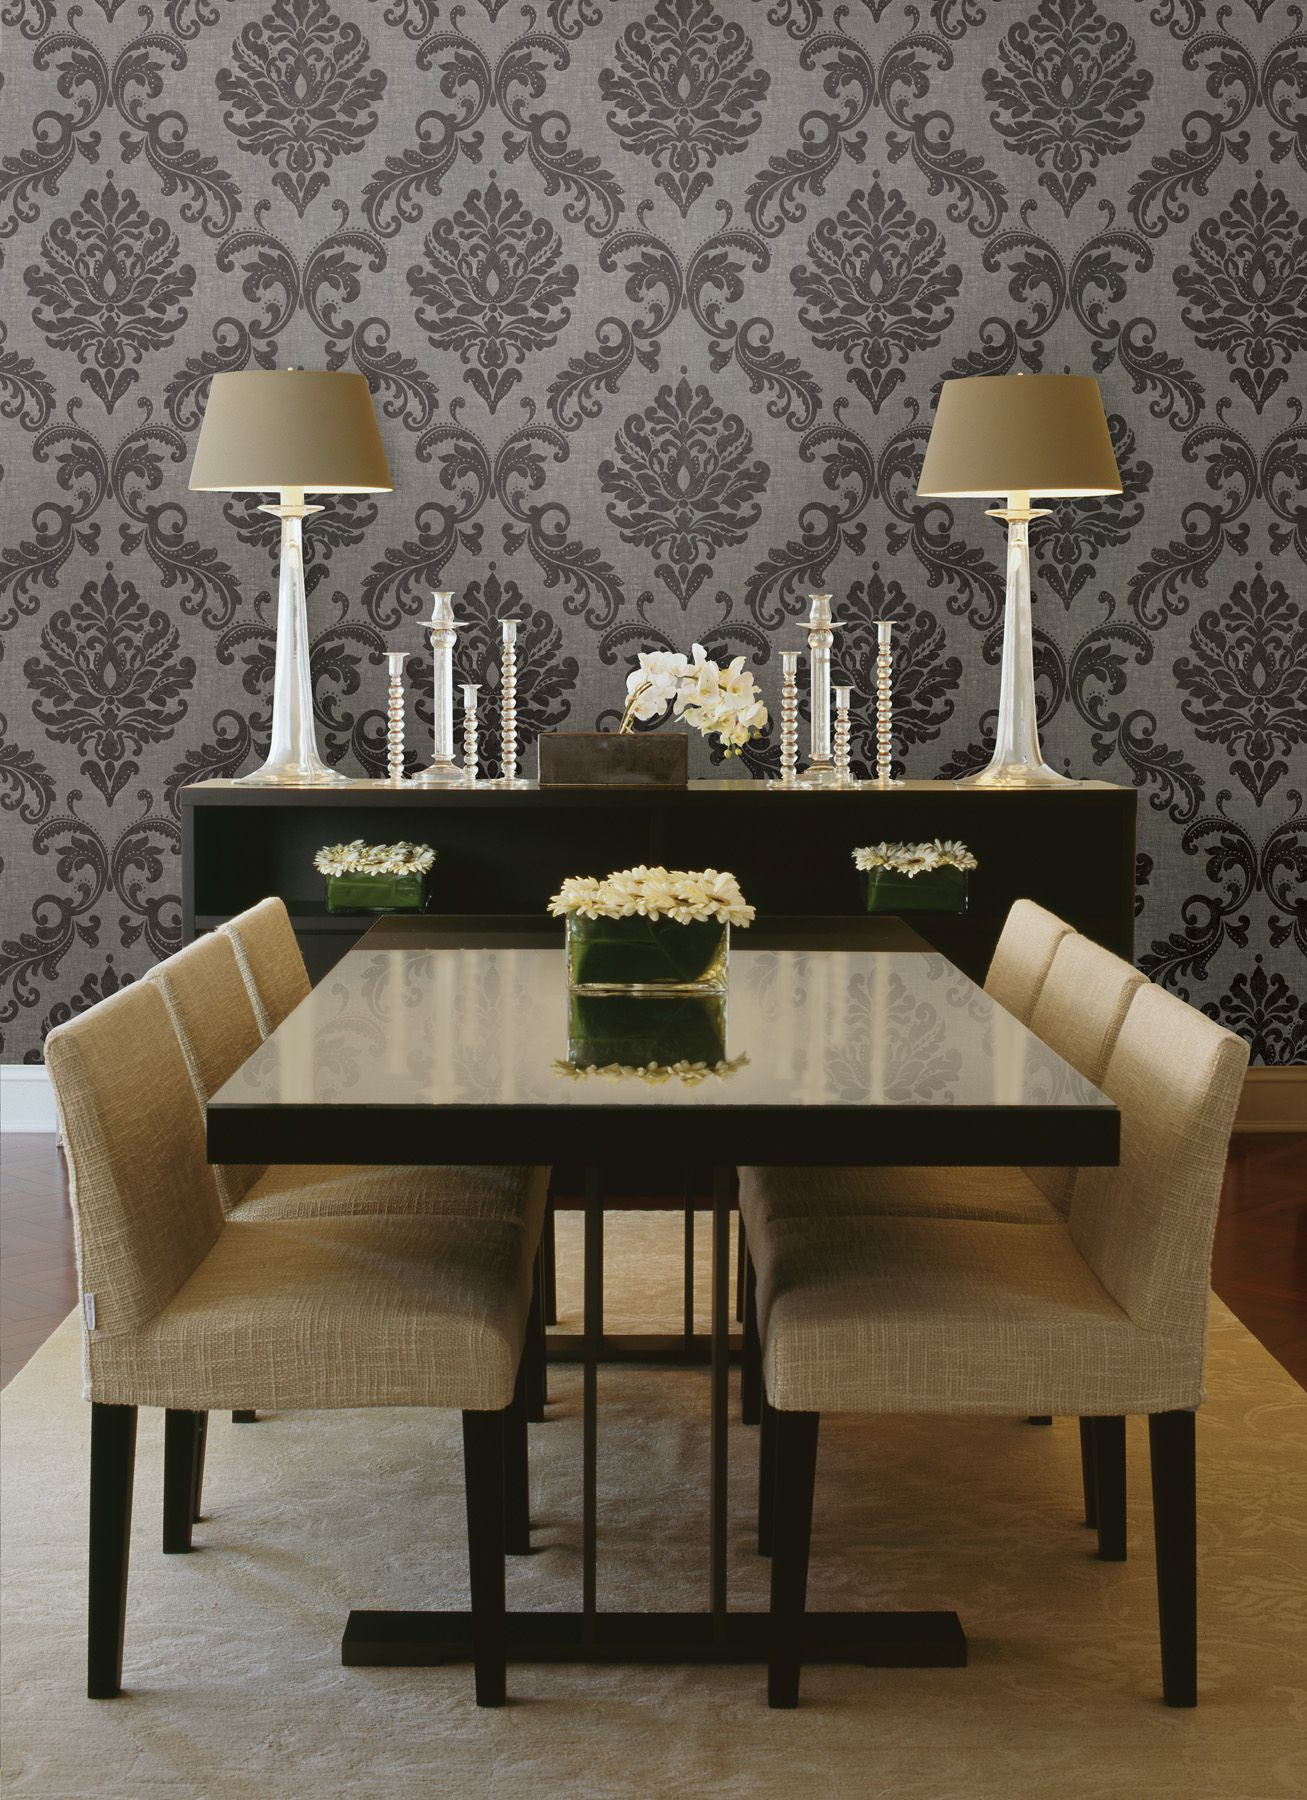 Gorgeous Formal Dining Room Decor Idea With A Damask Wallpaper